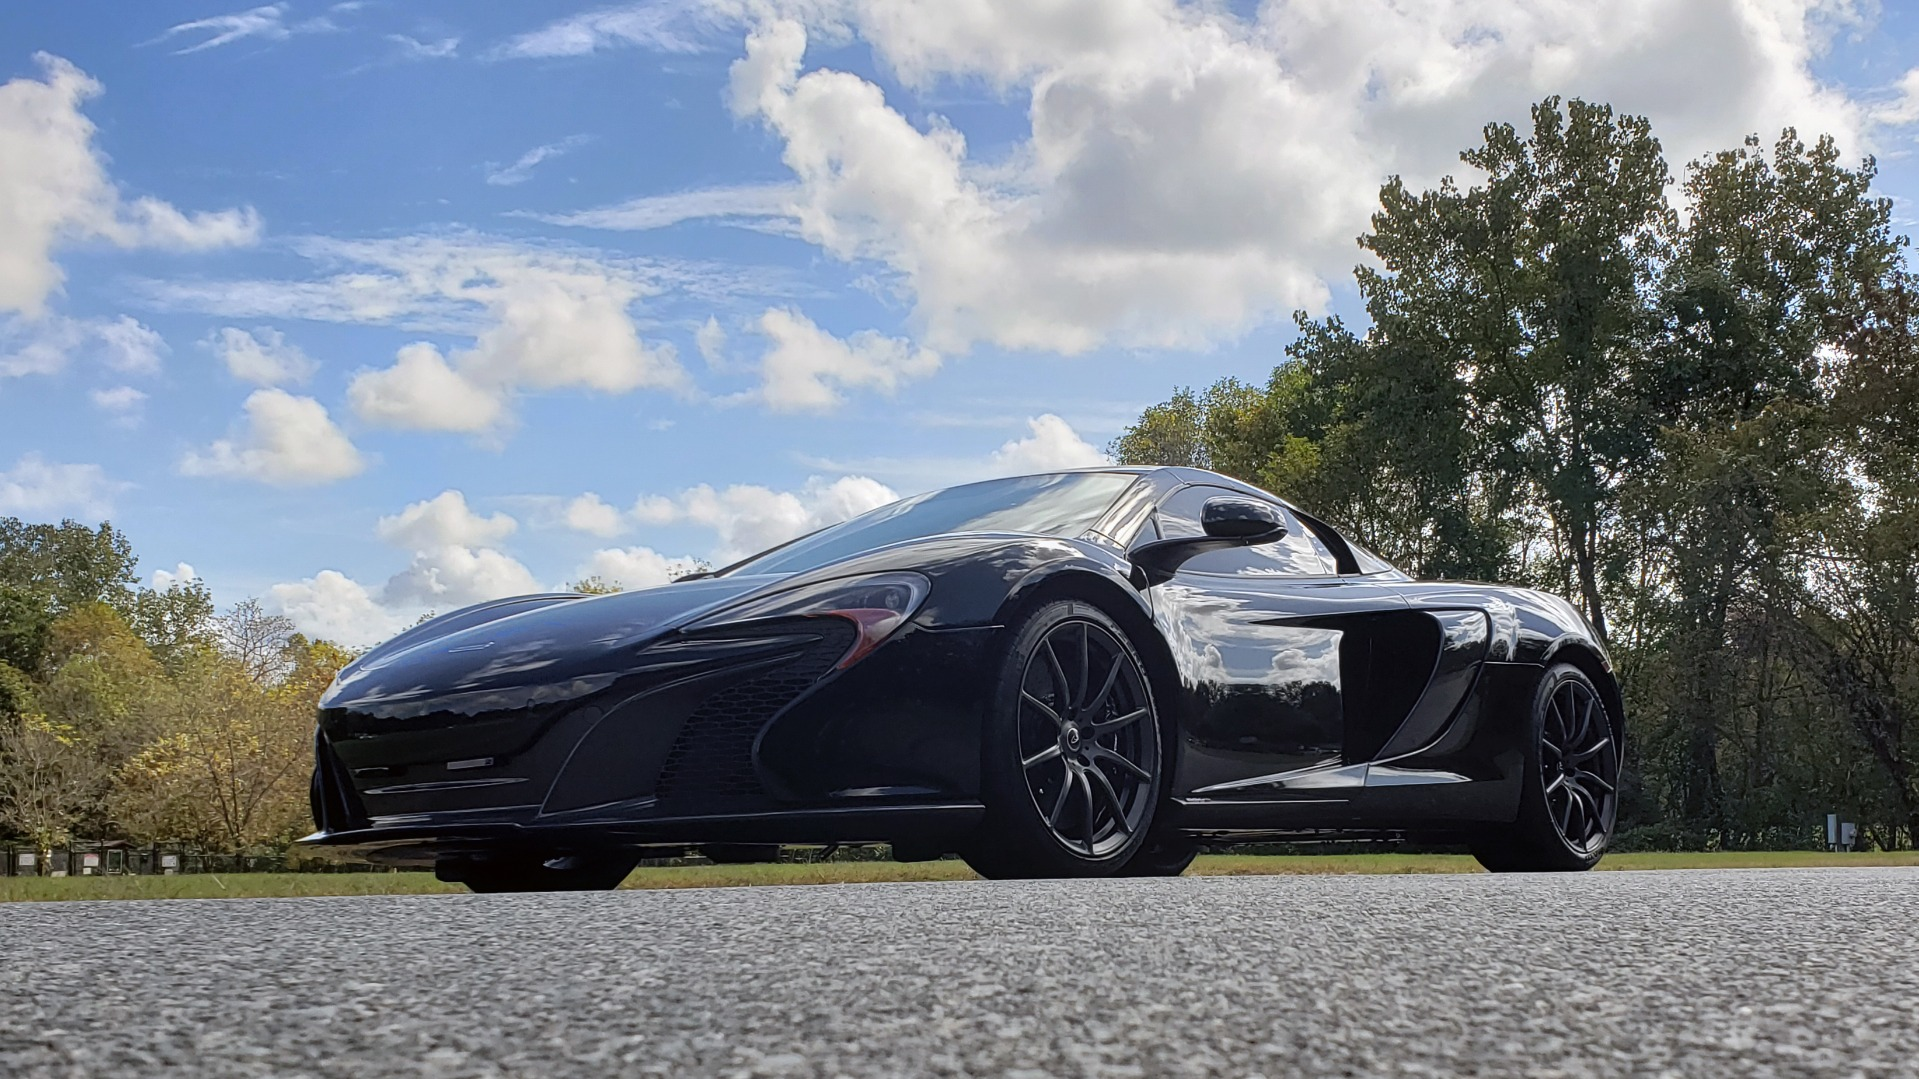 Used 2016 McLaren 650S SPIDER / 641HP / PARK SENSORS / LOW MILES / 1-OWNER for sale Sold at Formula Imports in Charlotte NC 28227 4